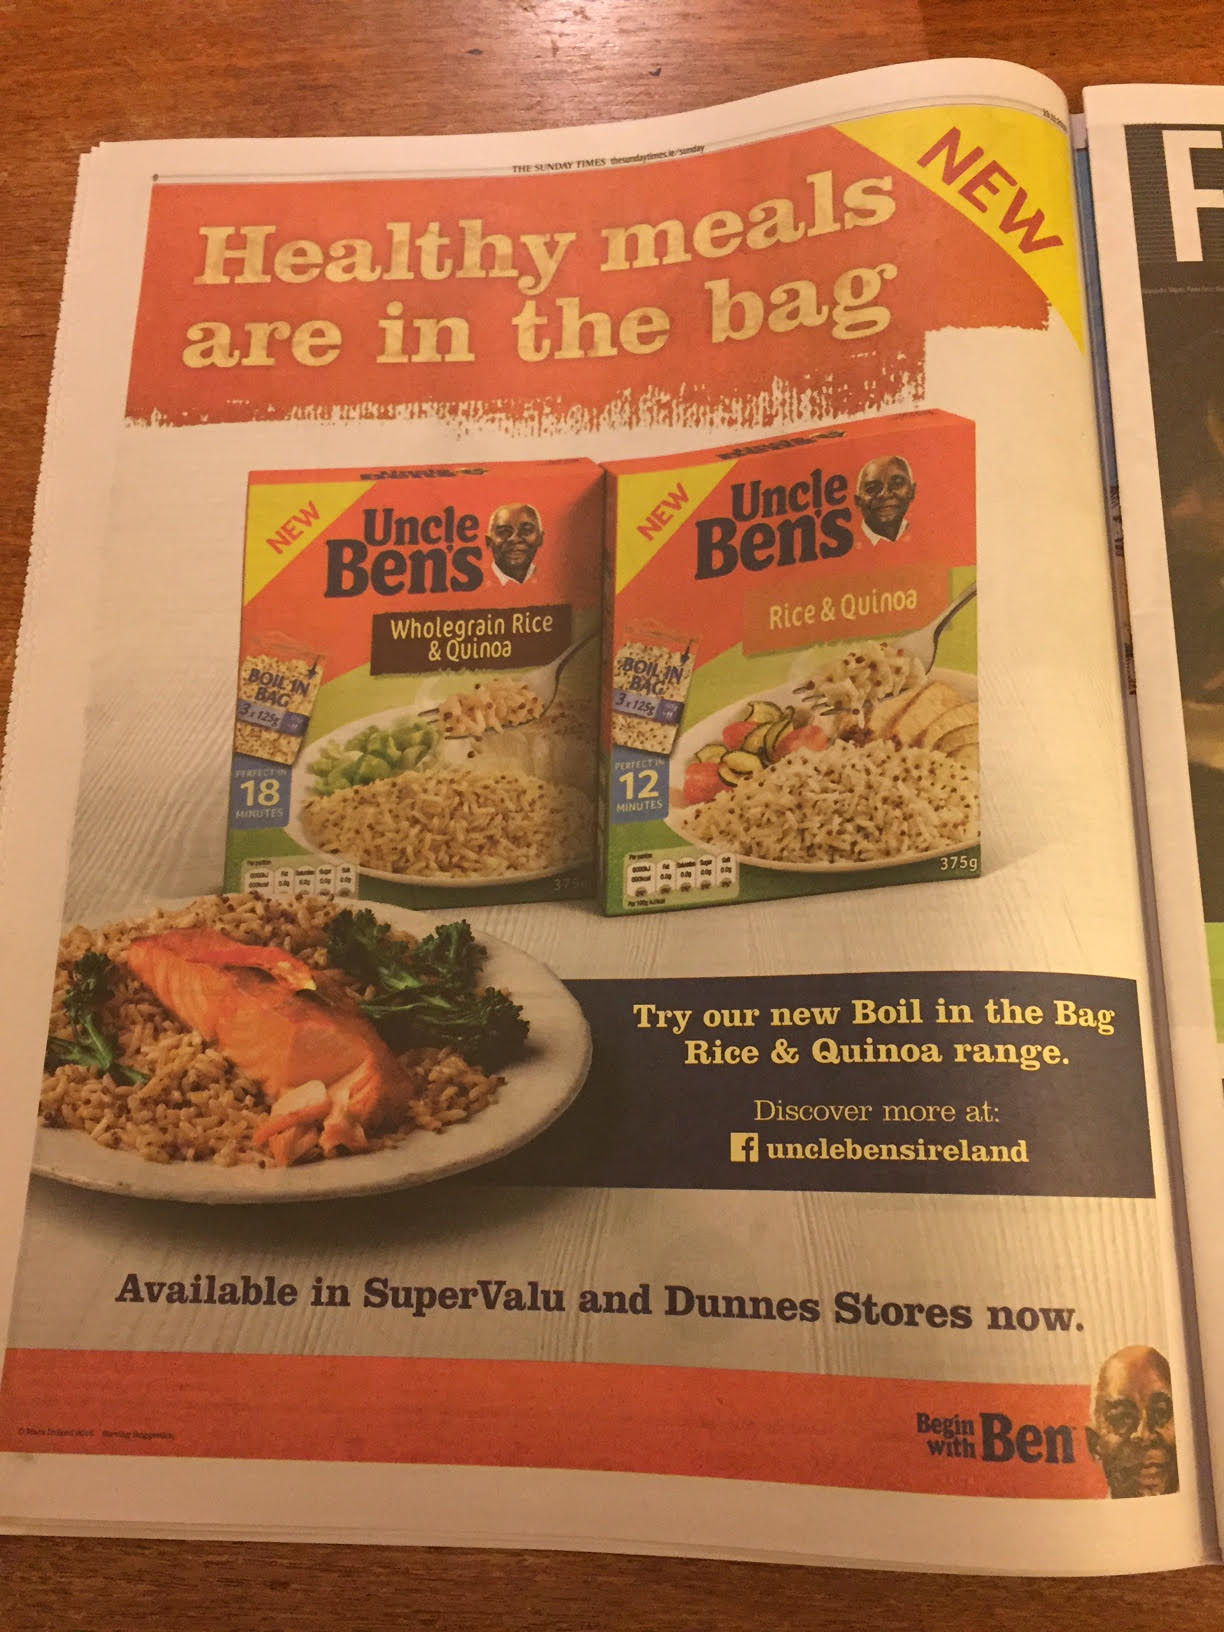 Uncle Ben's – Healthy meals are in the bag